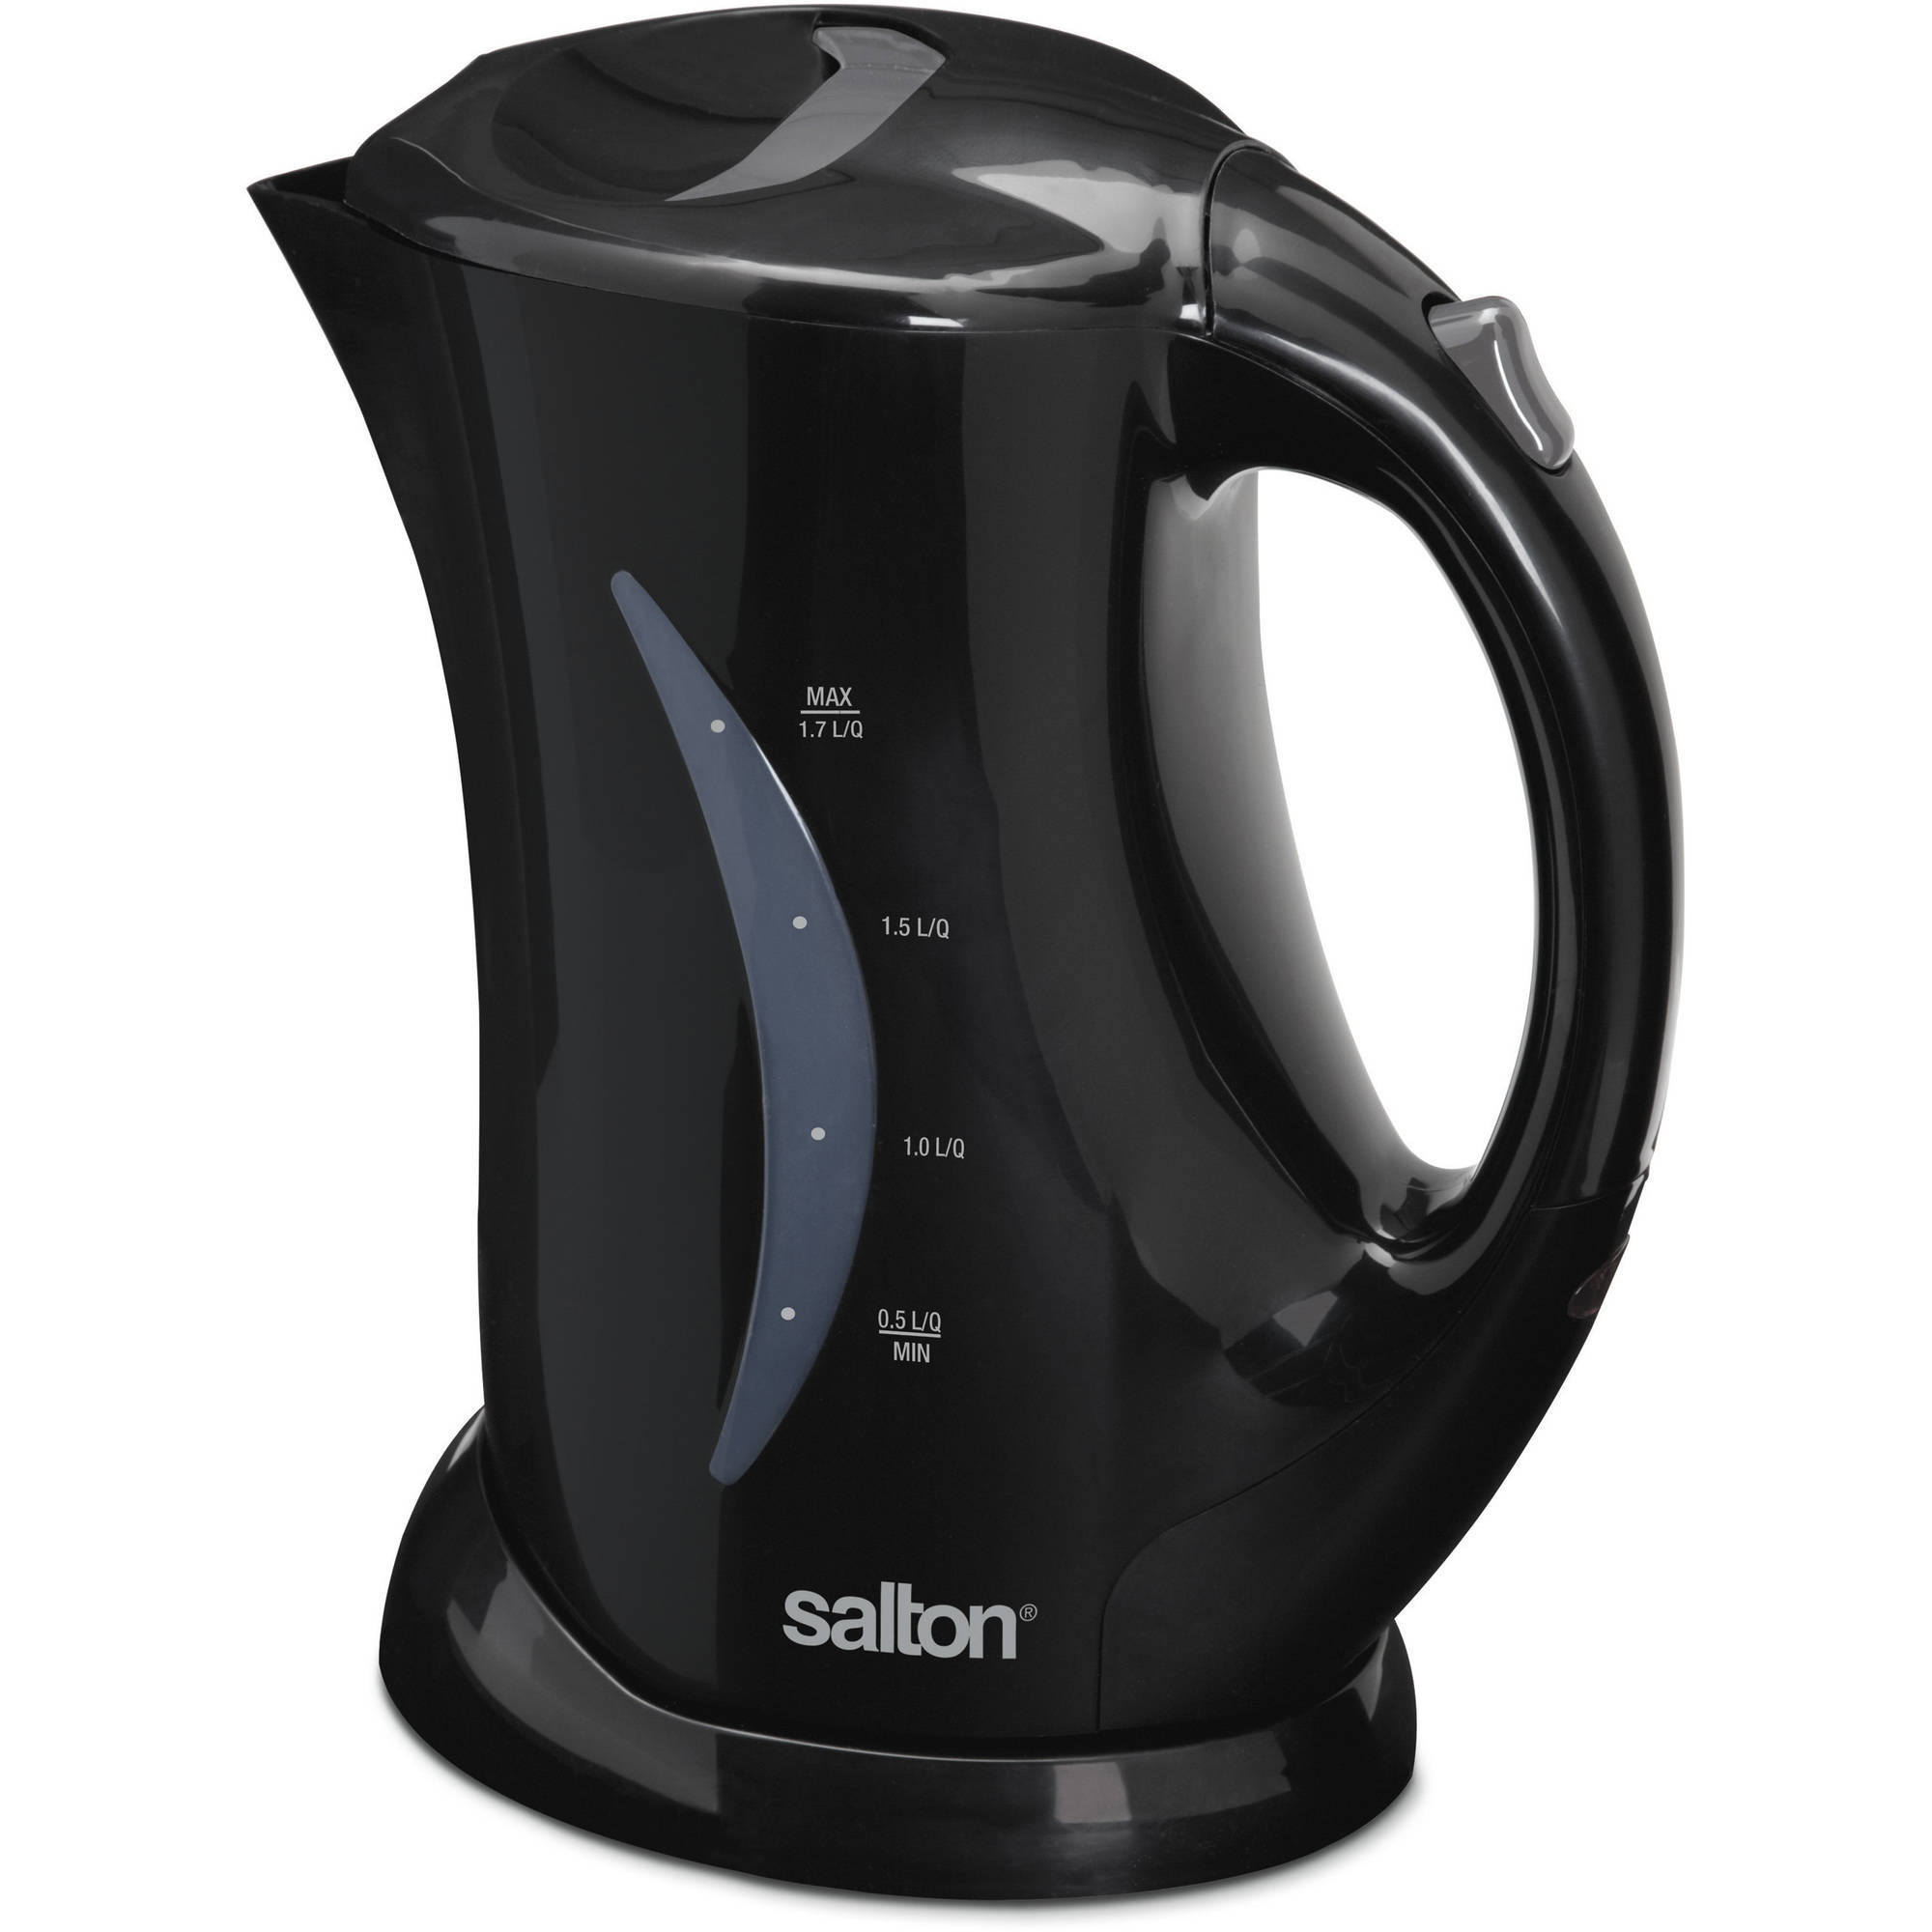 Salton Cordless Electric Jug Kettle, 1.7L, Red